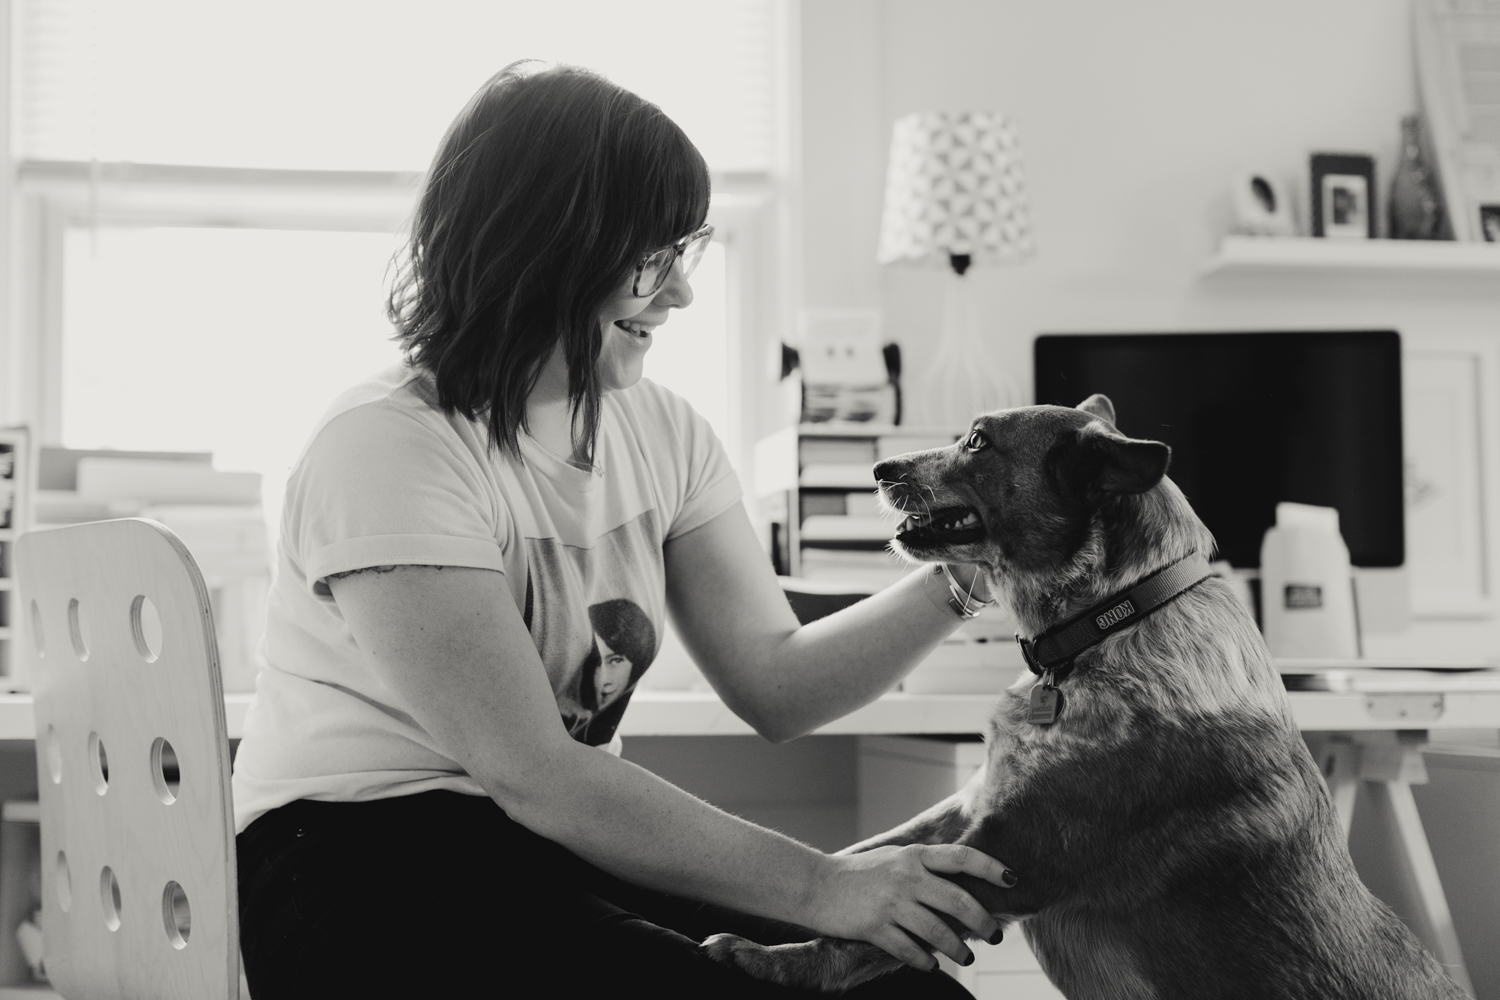 Amber Esner, Cleveland female artist, with dog Churro